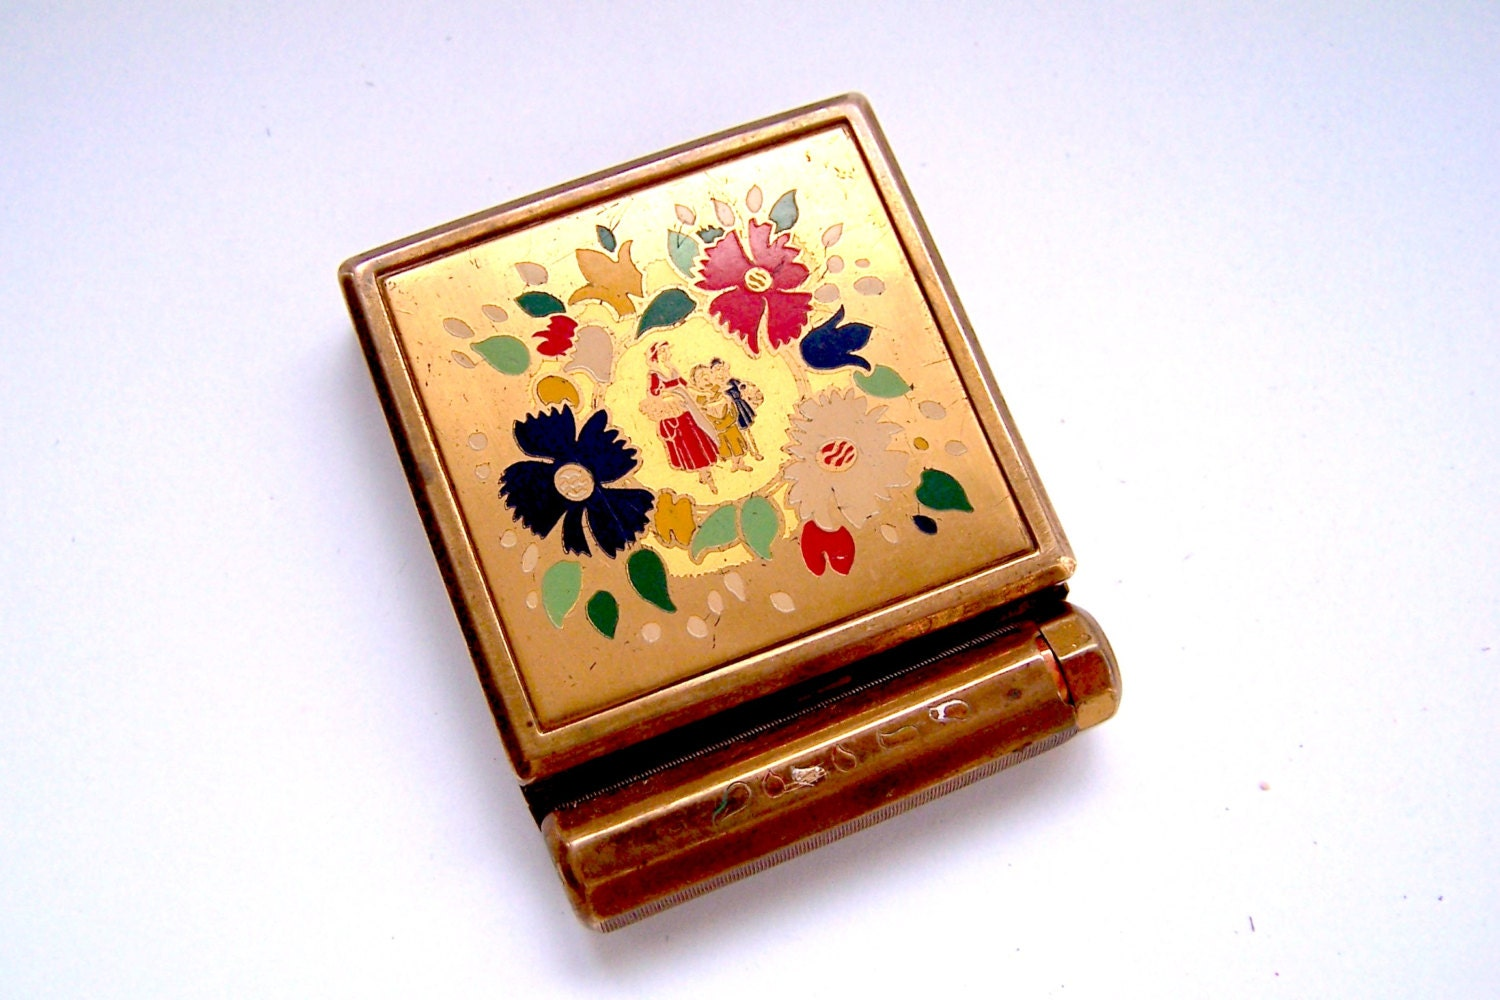 Compact Yardley 1940s Enameled Brass Compact Holds Powder